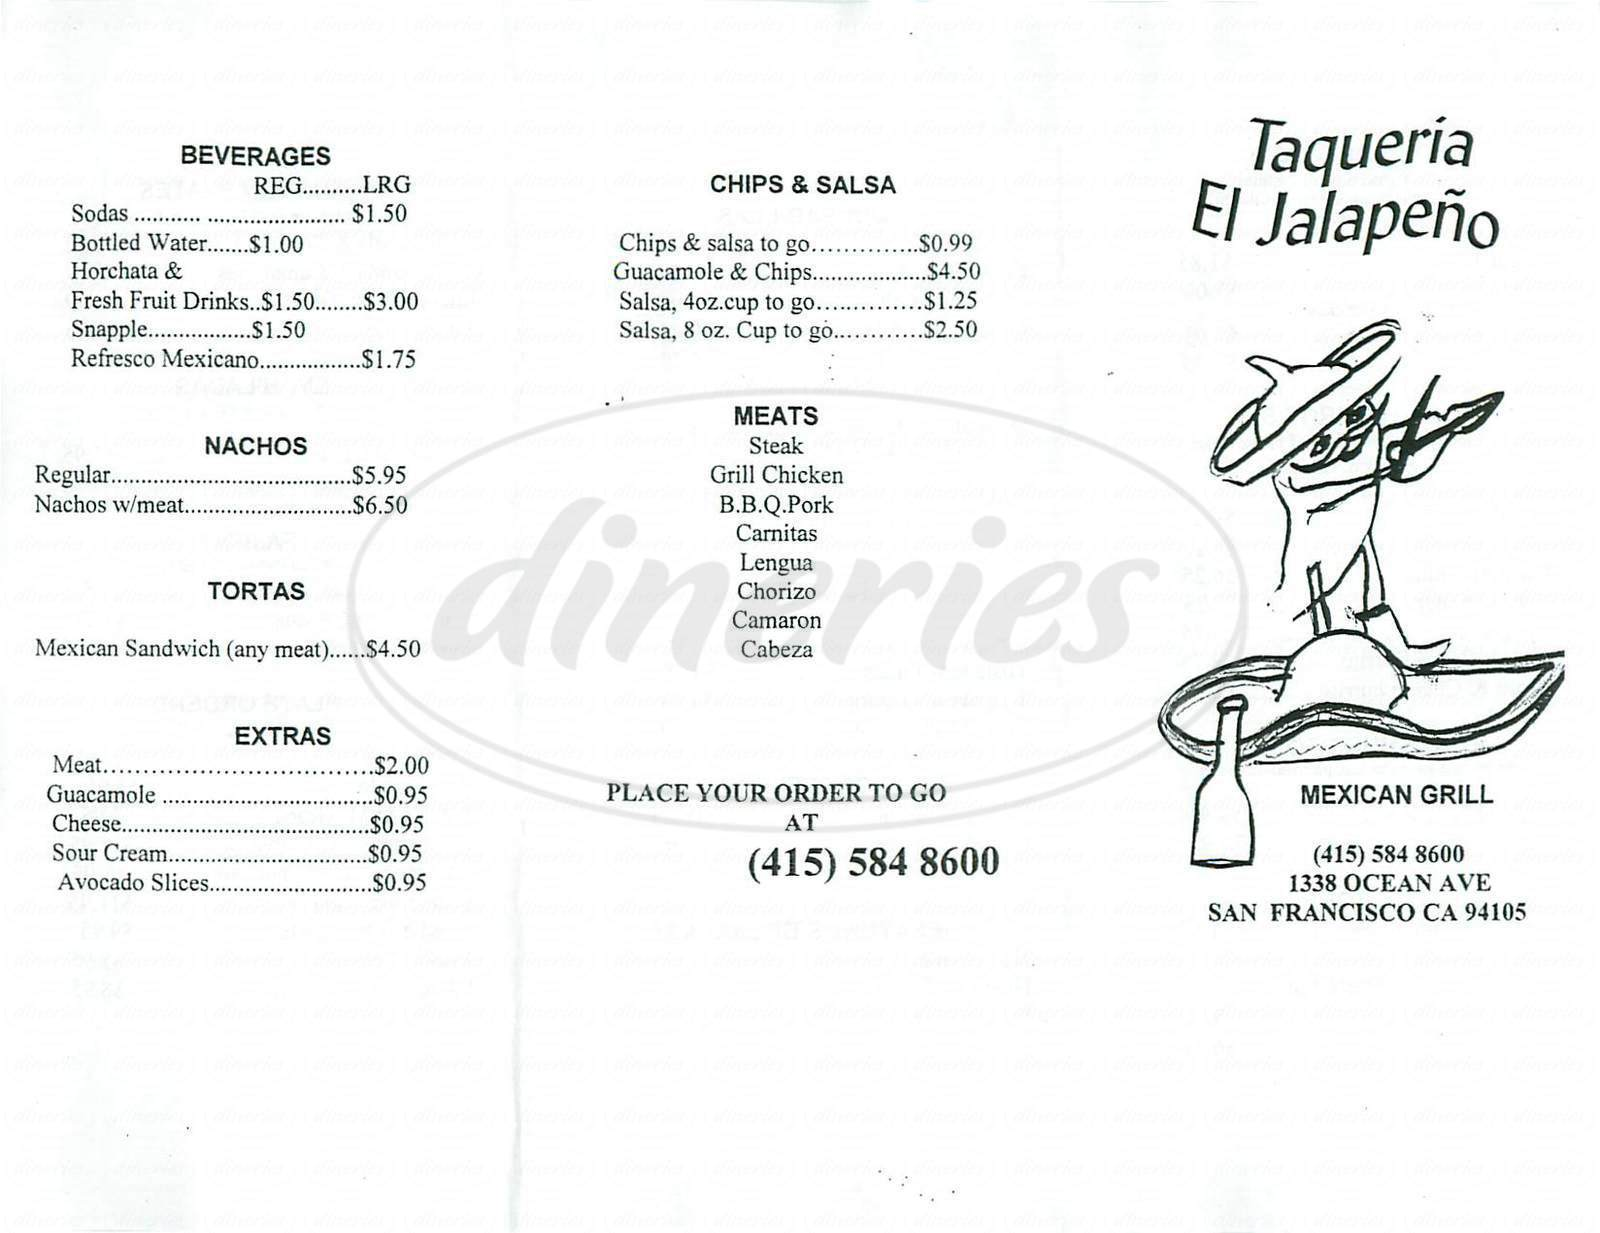 menu for Taqueria El Jalapeno